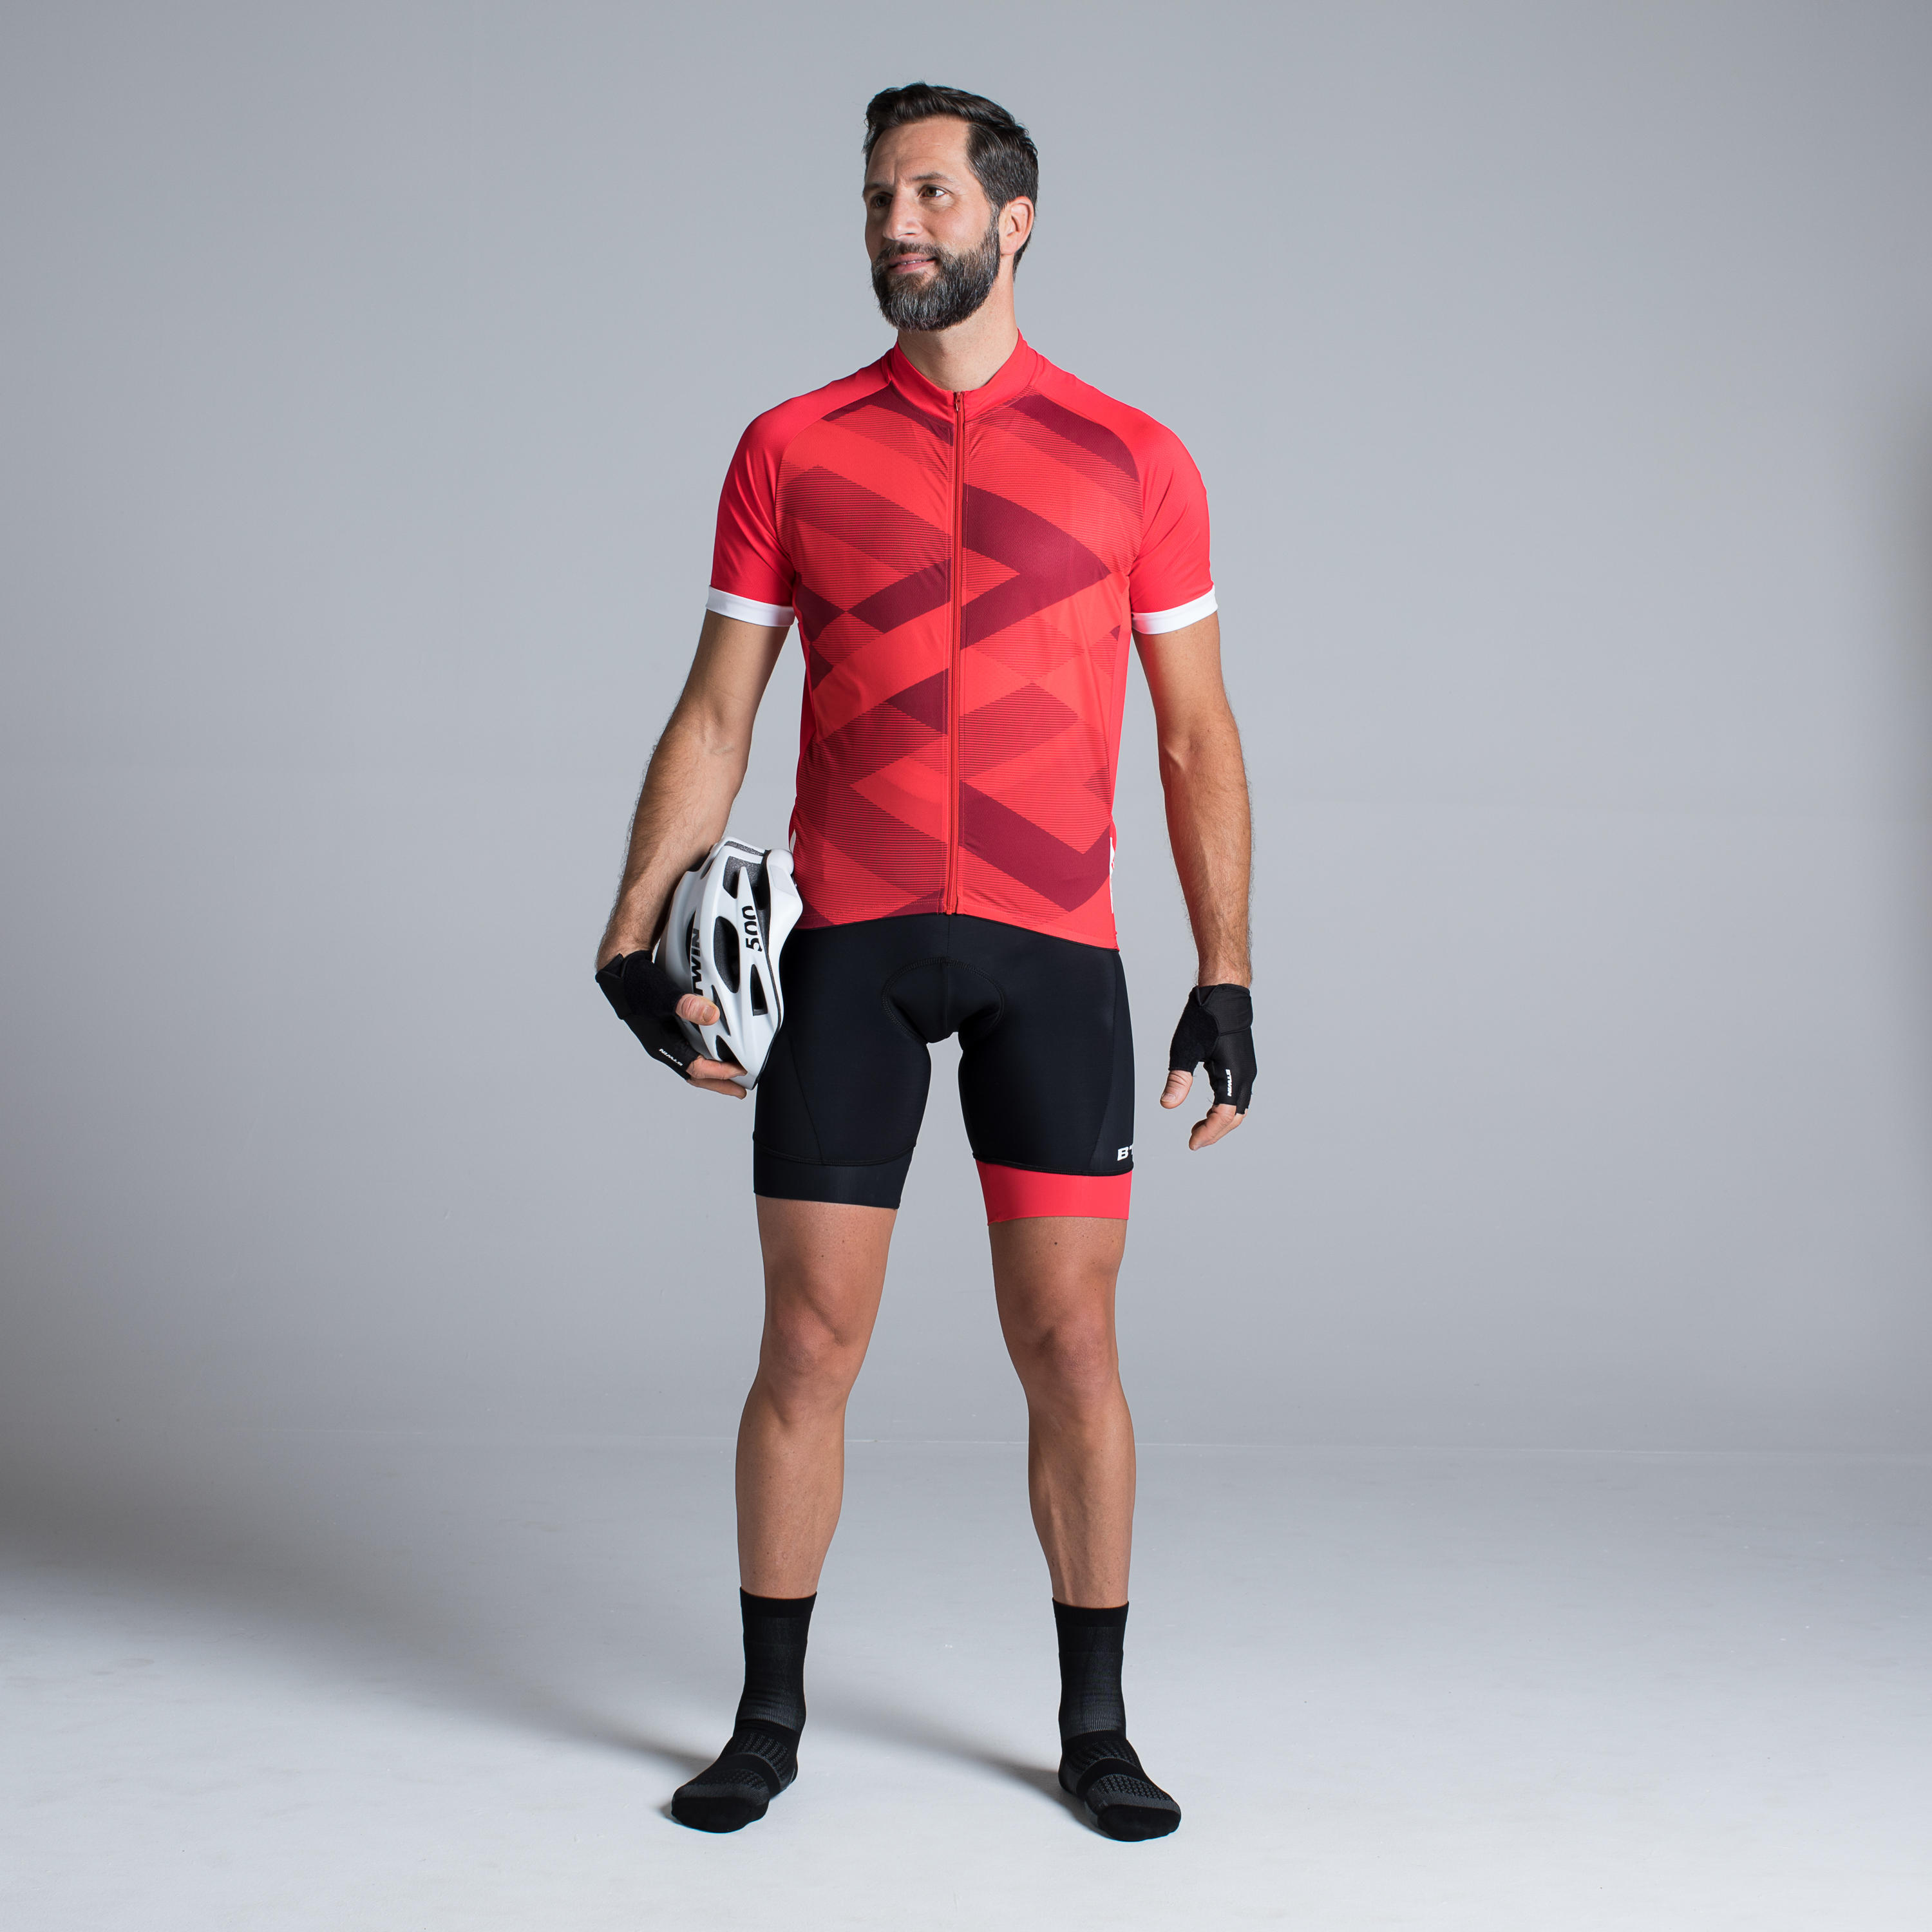 500 X Short-Sleeved Road Cycling Jersey - Red